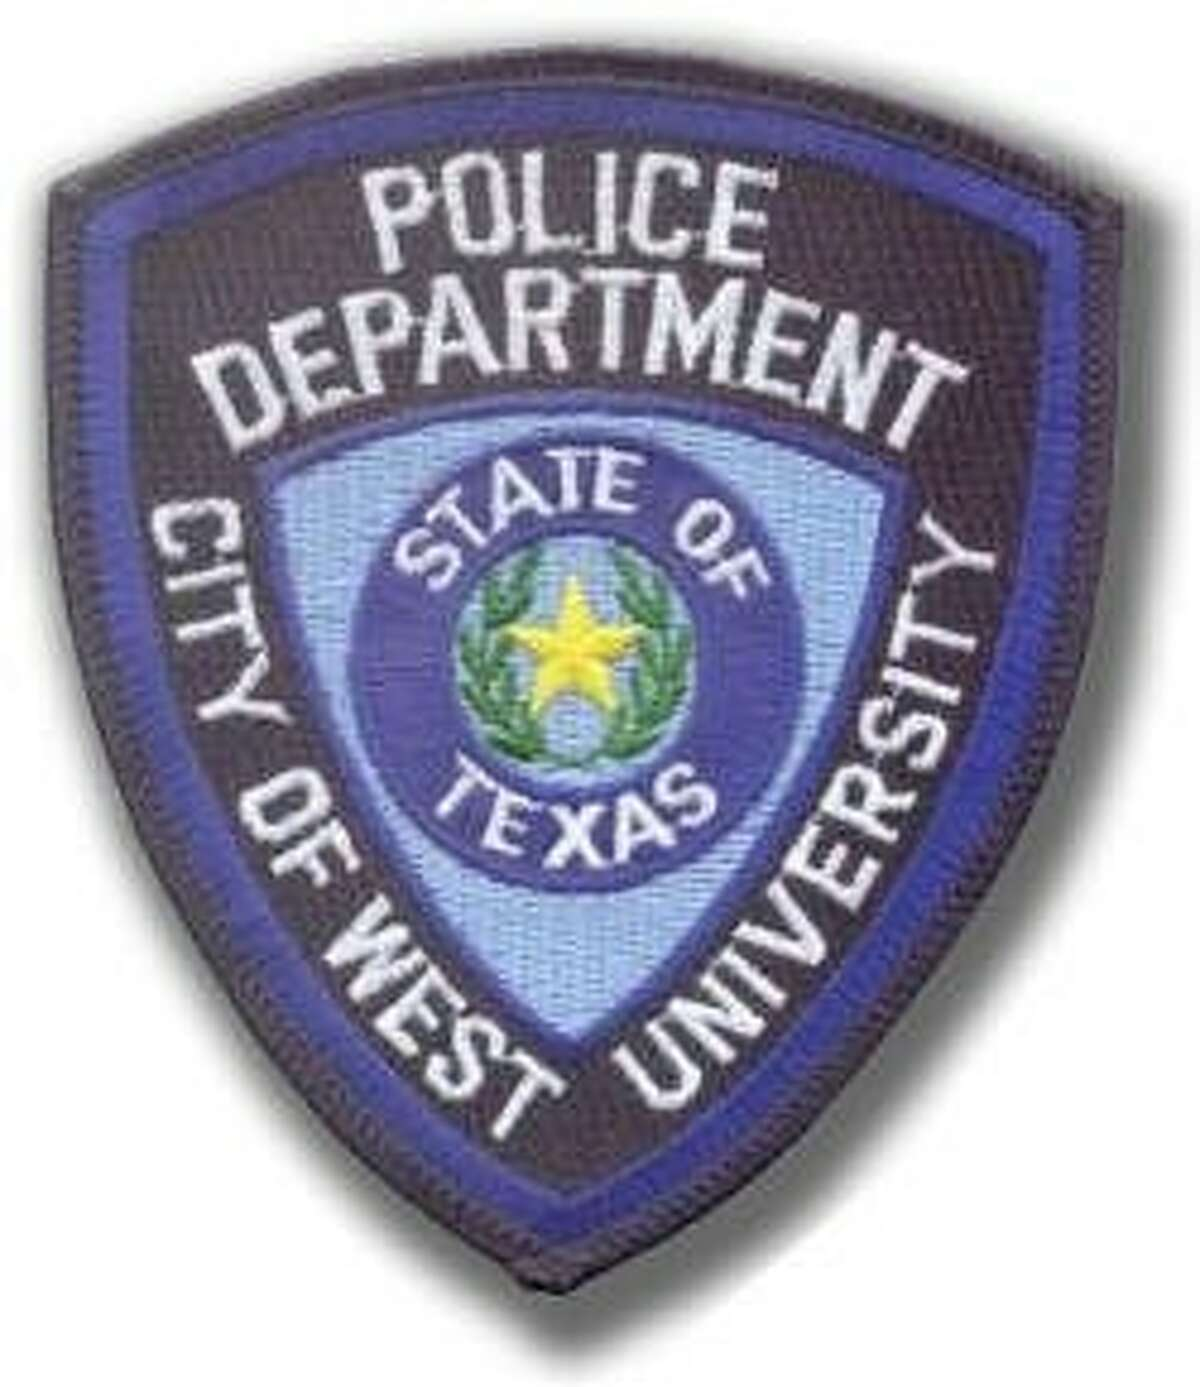 Burglaries, assaults top West U police report